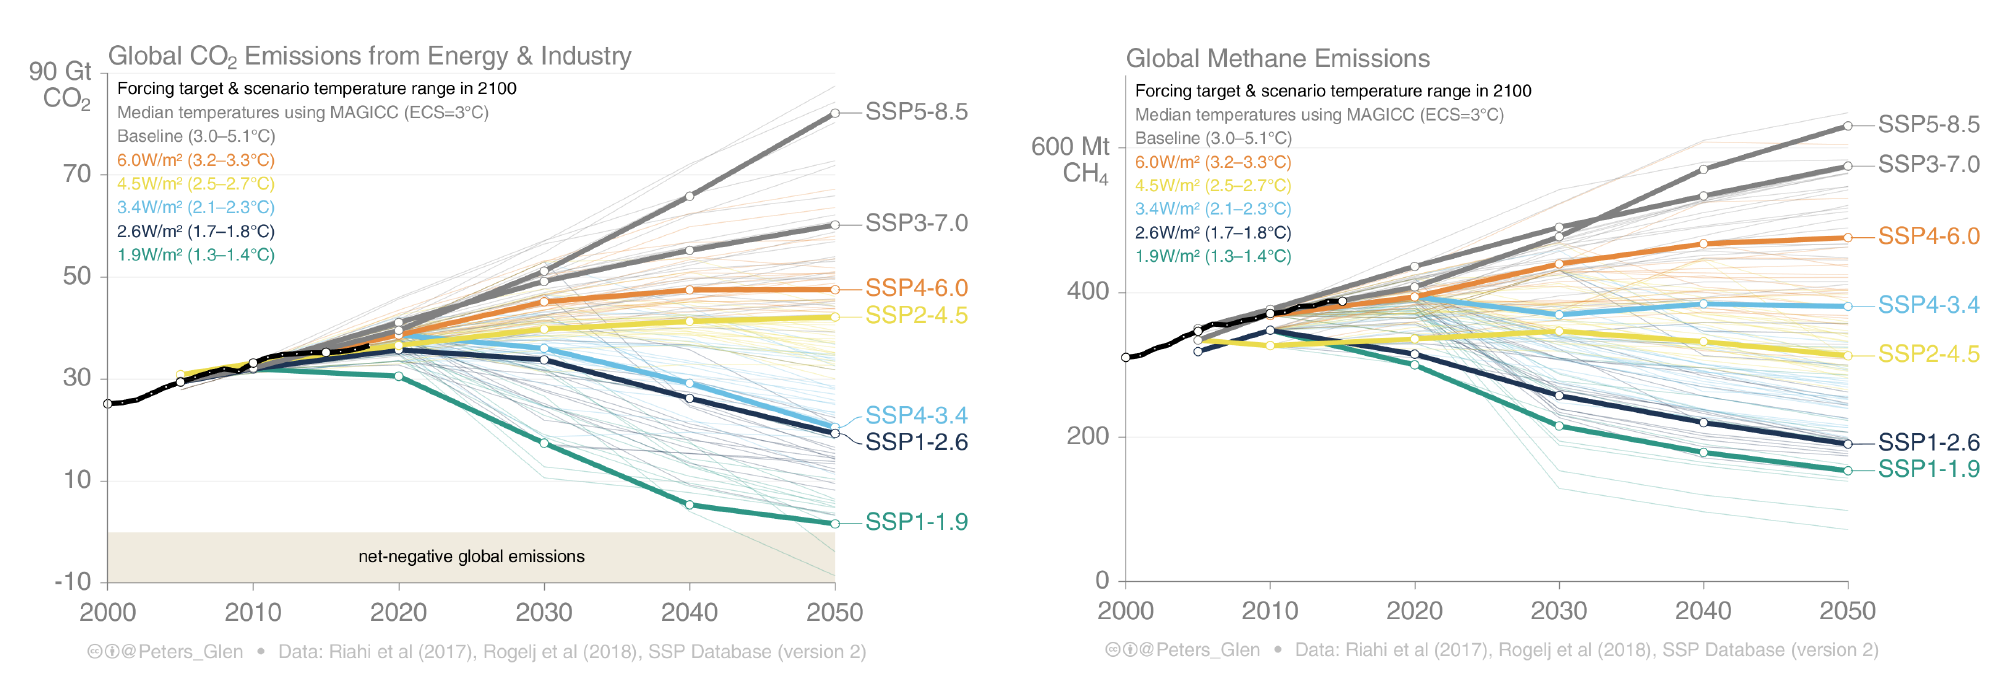 Figure 5. Estimated fossil CO2 and CH4 emissions from all human activities presented against the socio-economic pathways (SSPs) to 2050